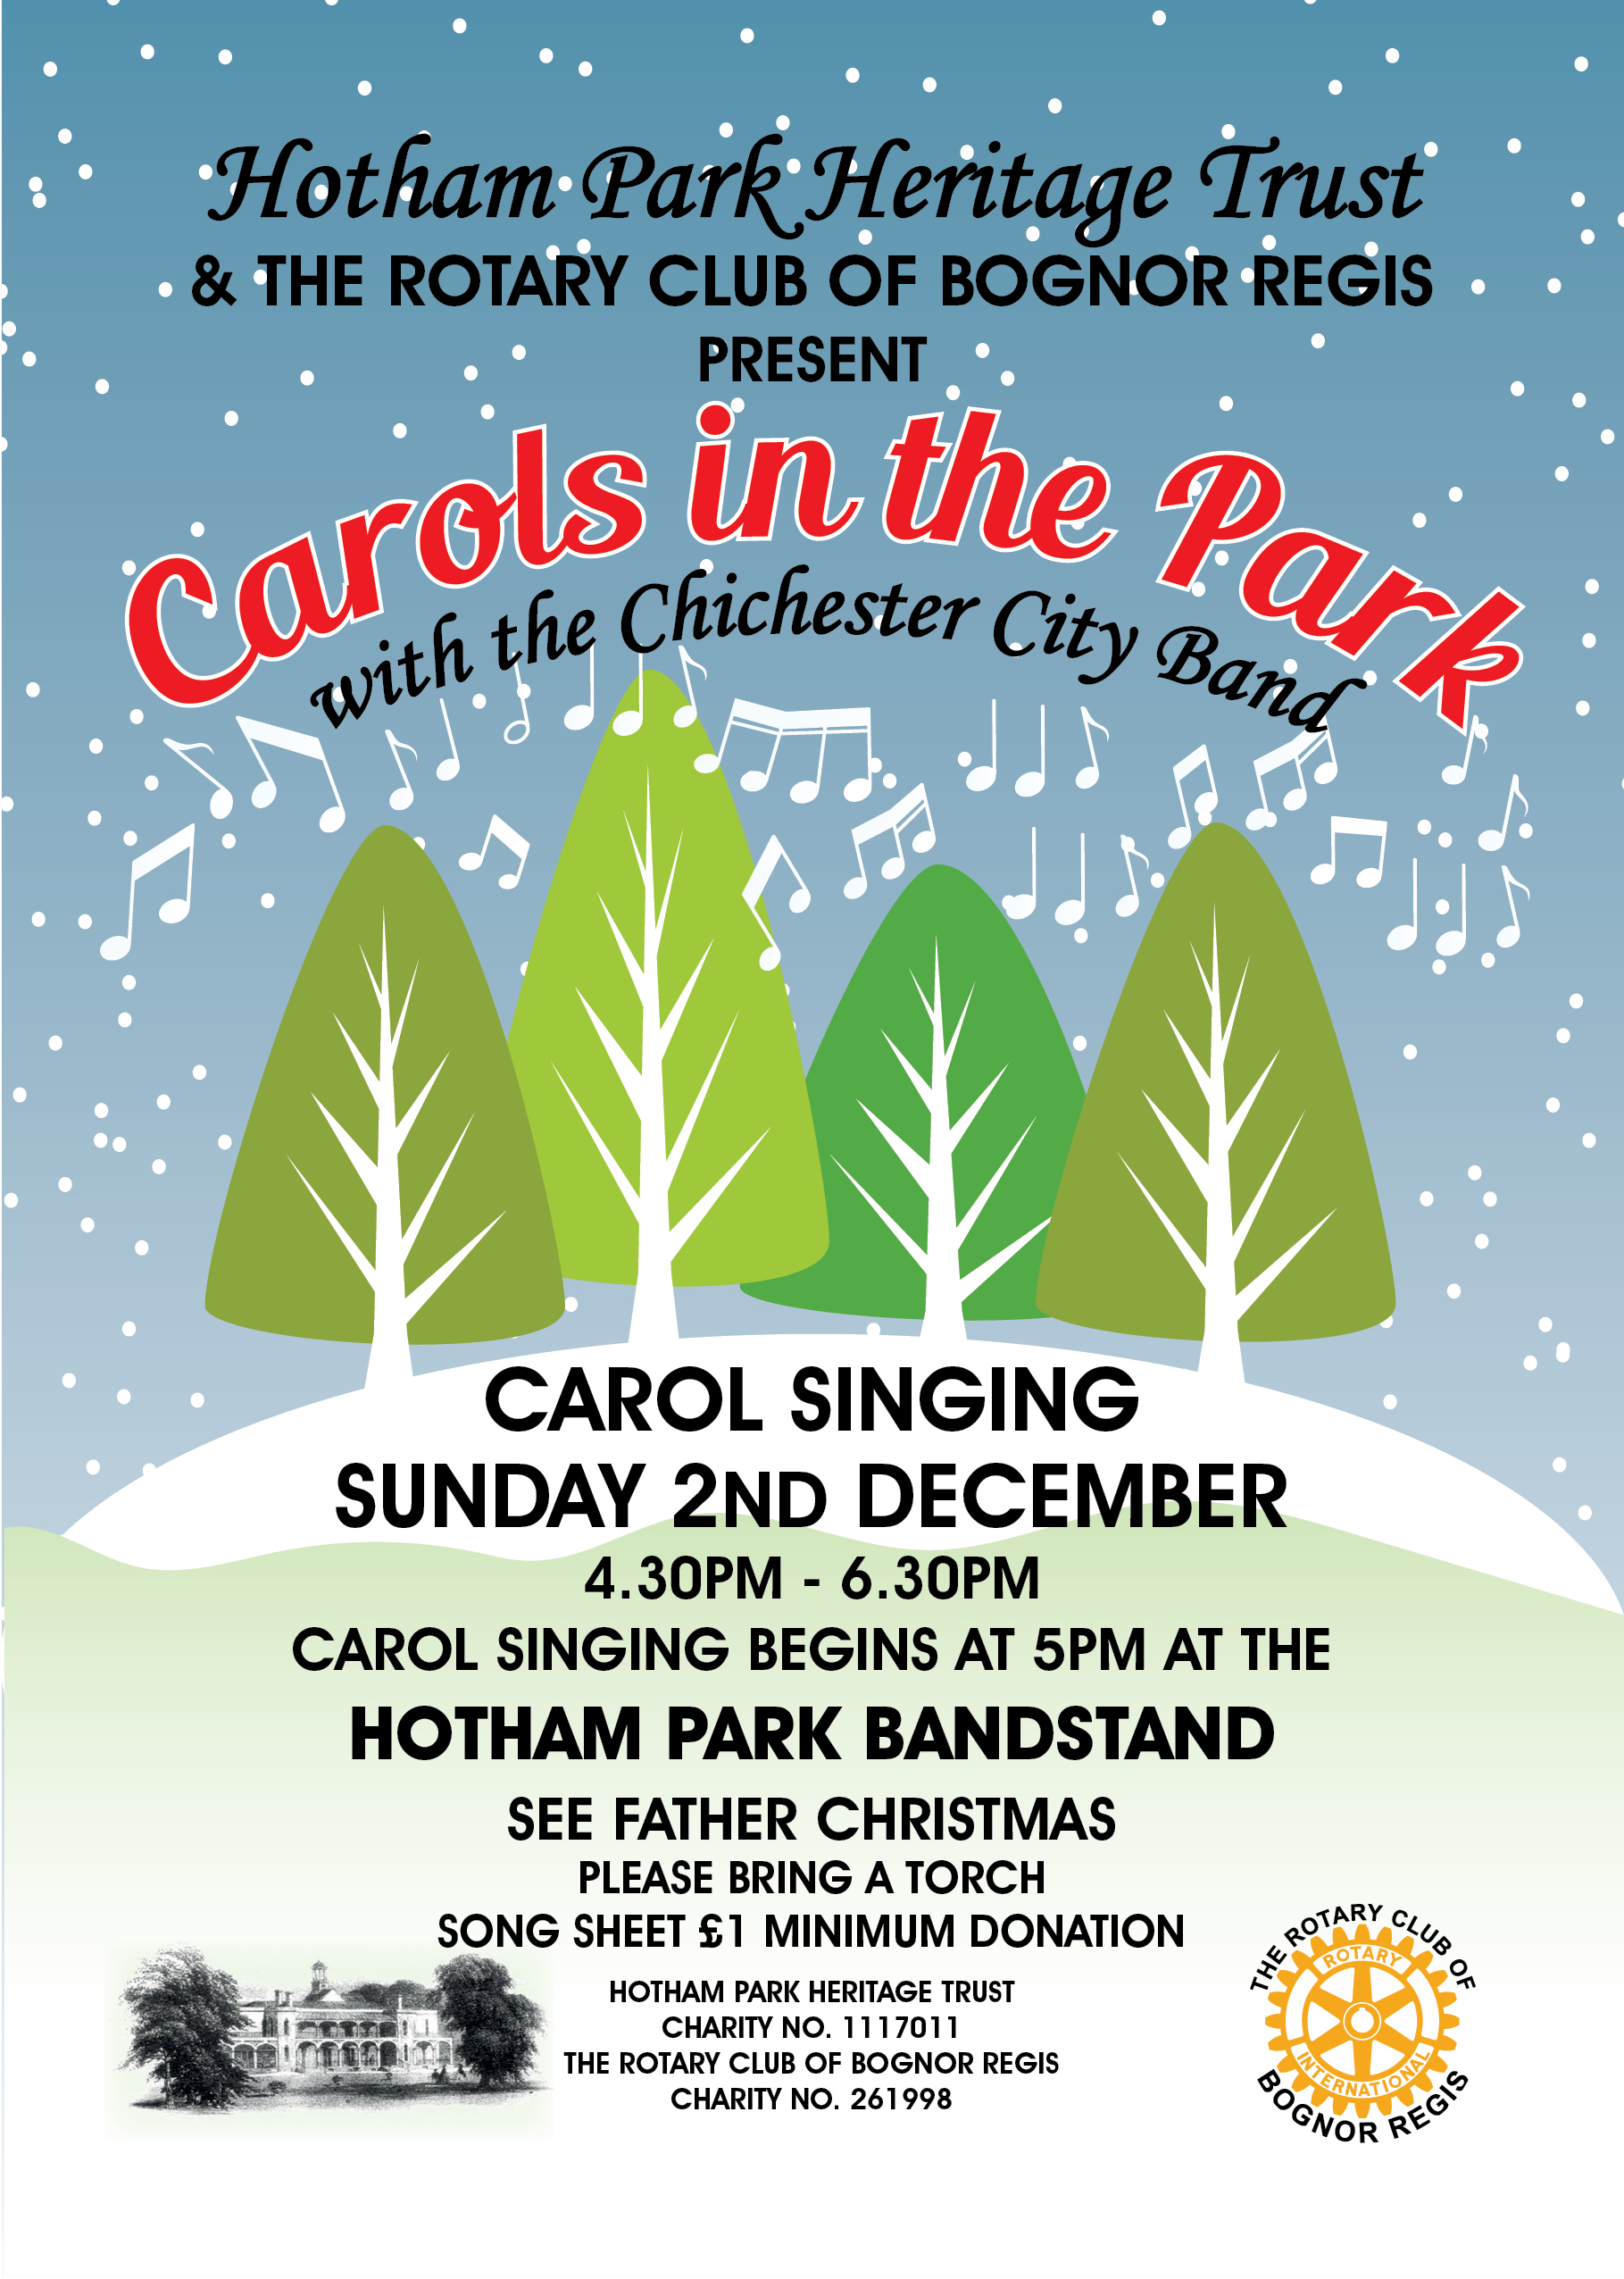 'Carols in the Park